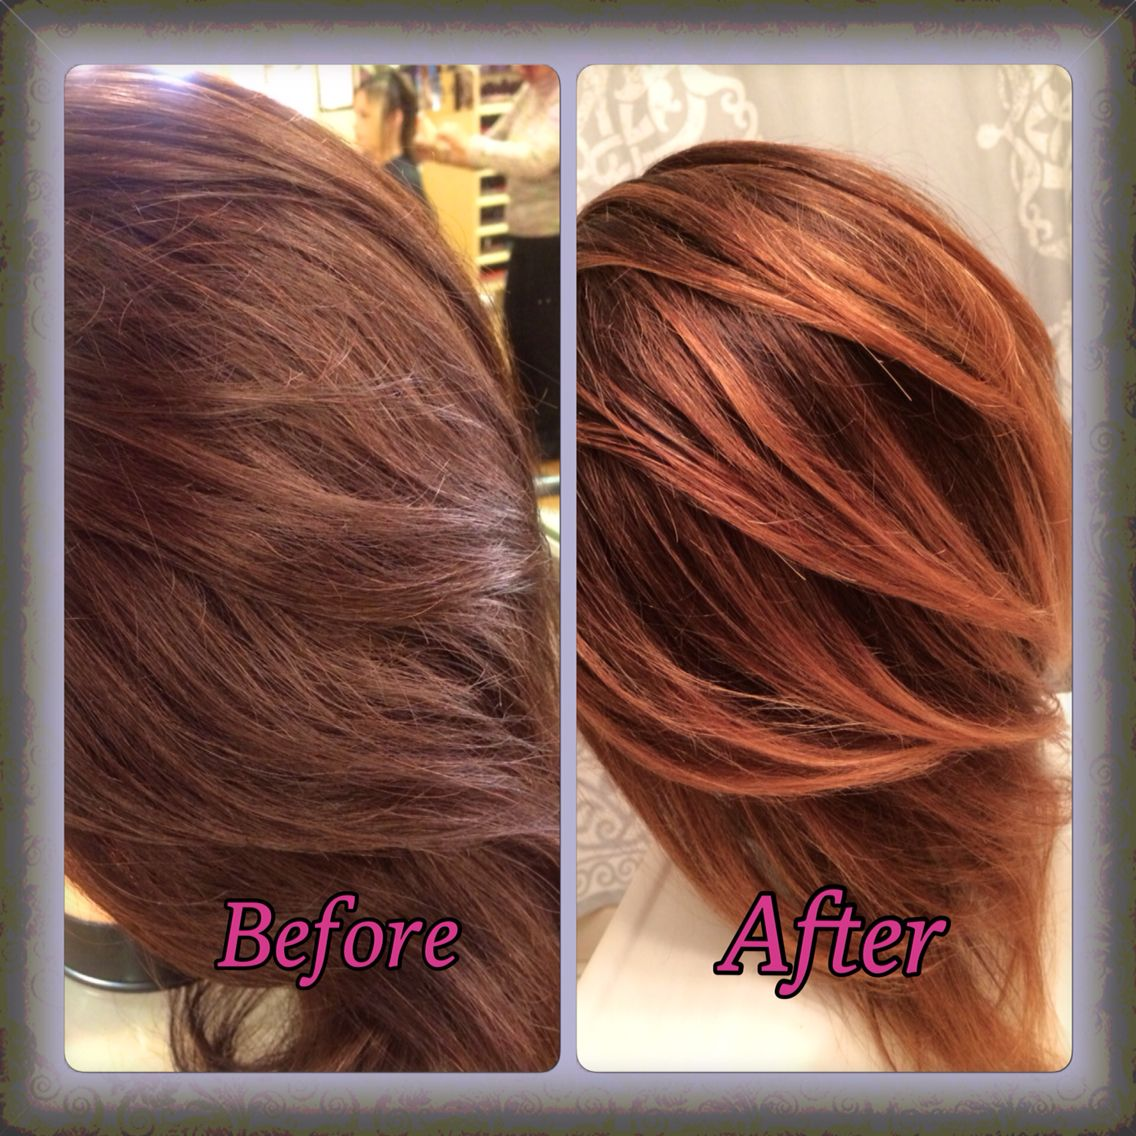 Matrix Color Equal Parts 5m 6vr For Base Blended With Balayage Highlights To Create A Sombre Effect Balayage Highlights Hair Color Formulas Balayage